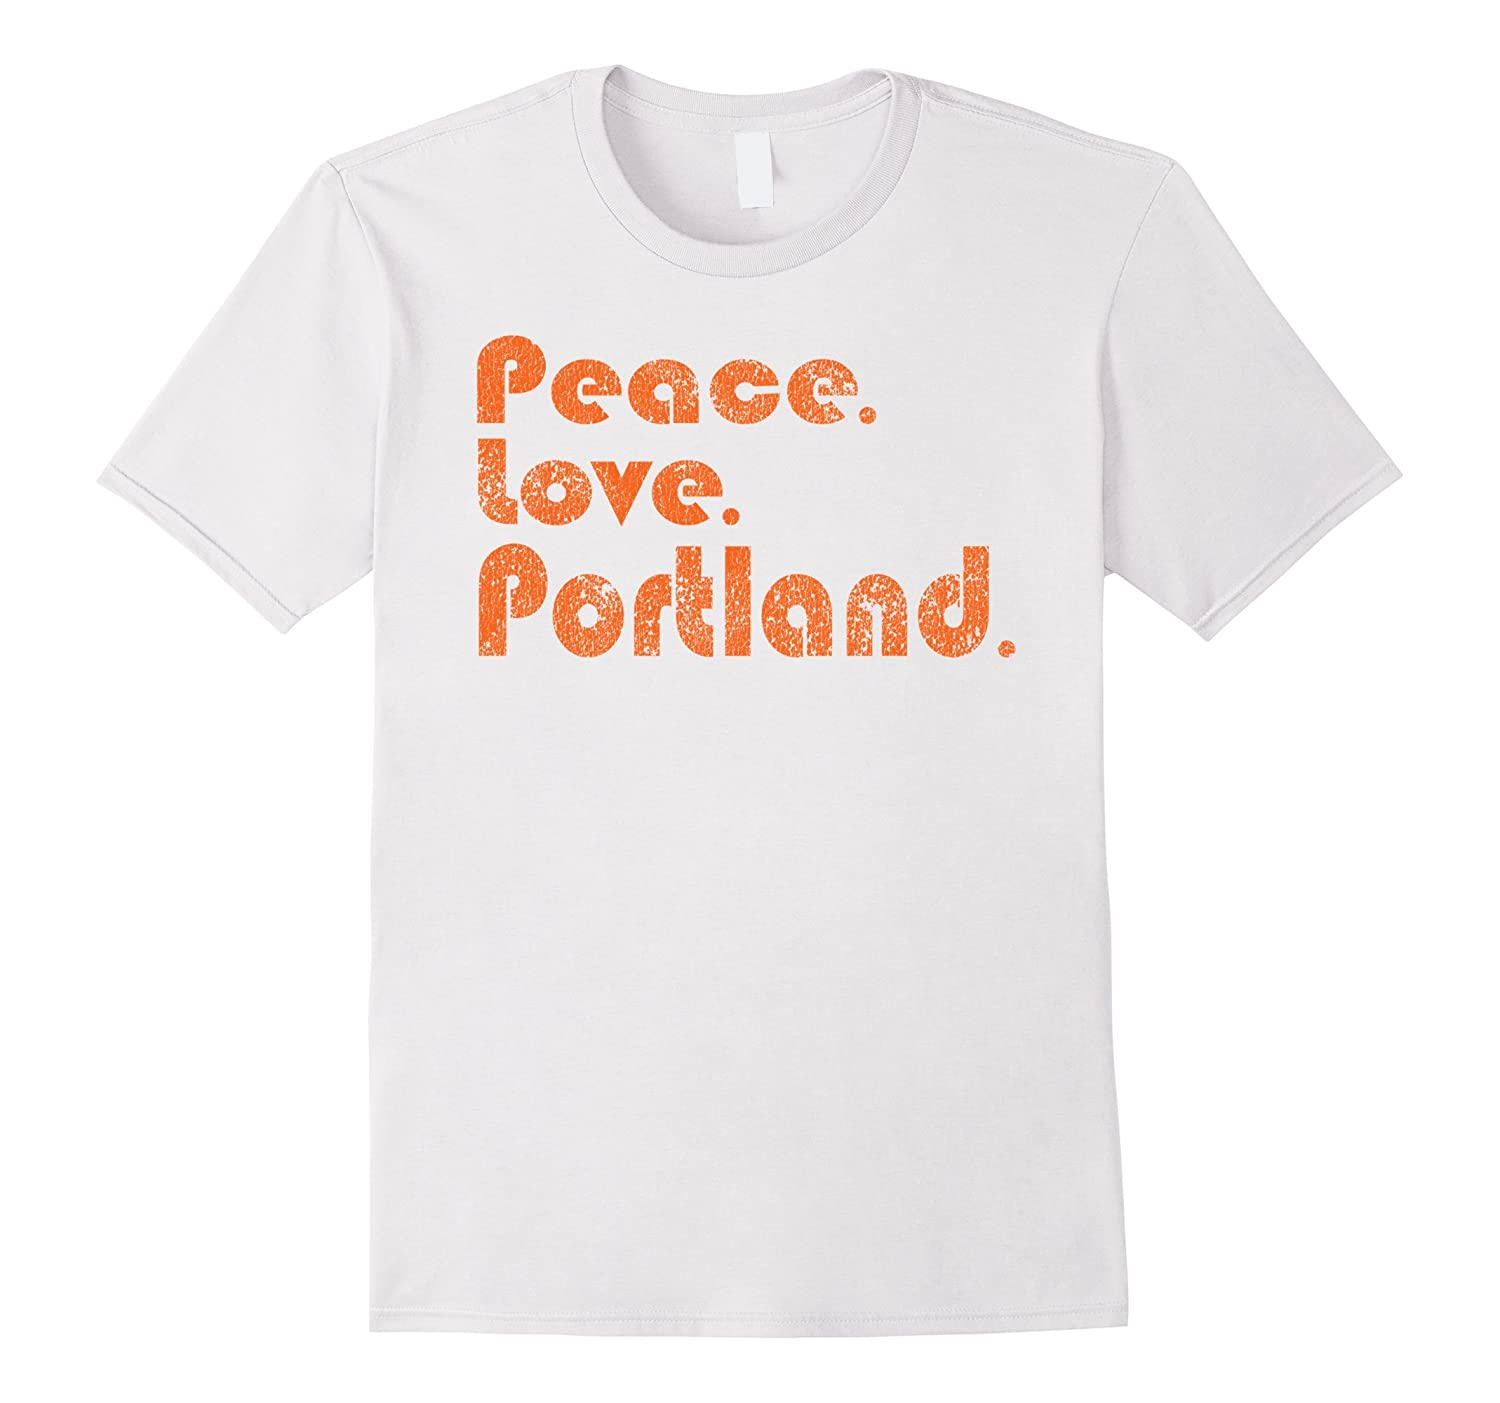 be1c7961 Awesome Retro Peace Love Portland Oregon Tshirt-CL – Colamaga